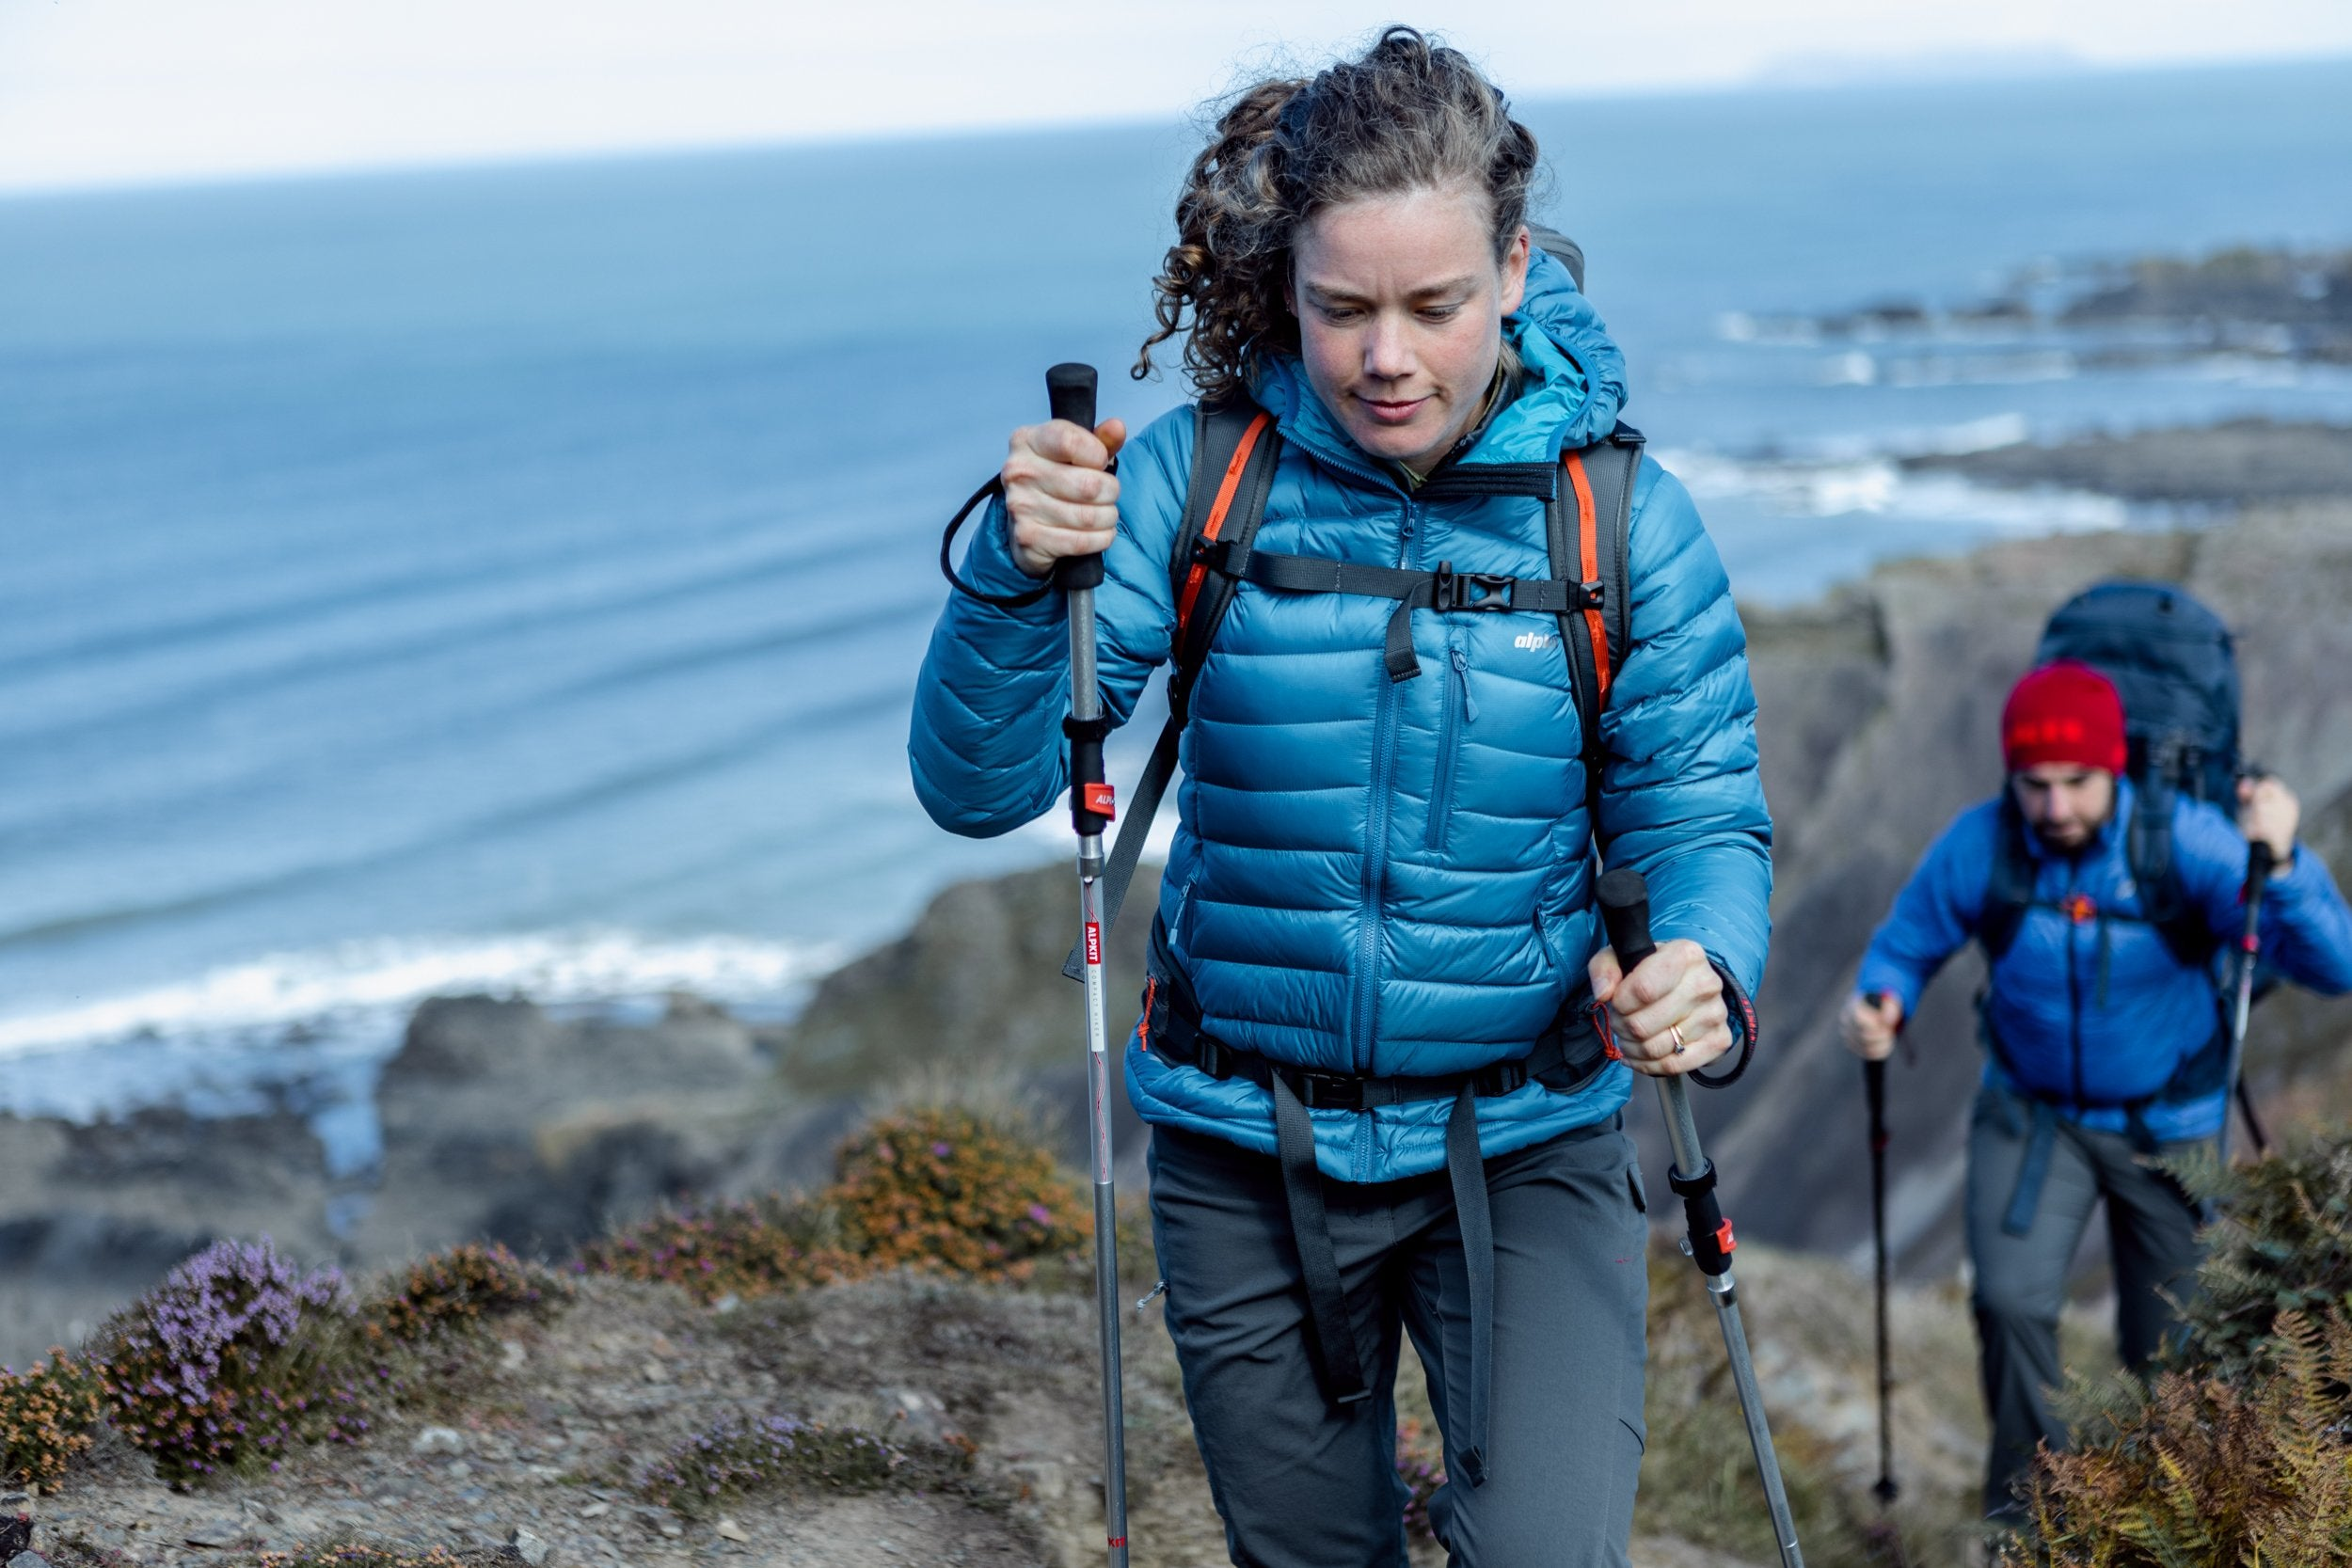 A woman walking in the Filoment lightweight down jacket with recycled down and recycled fabrics on the Devon coast